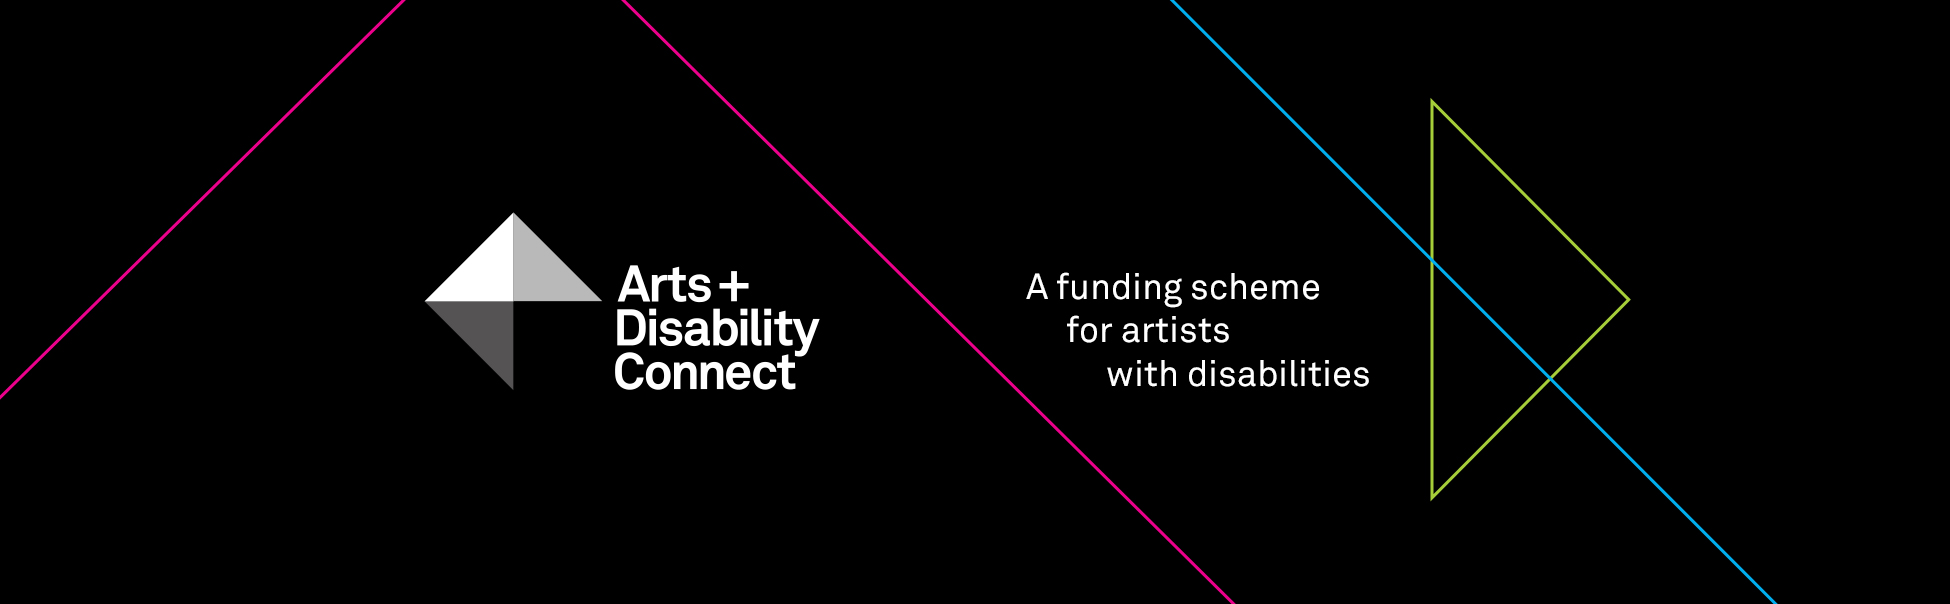 Arts and Disability Connect funding scheme for artists with disabilities 2018 Logo and graphic